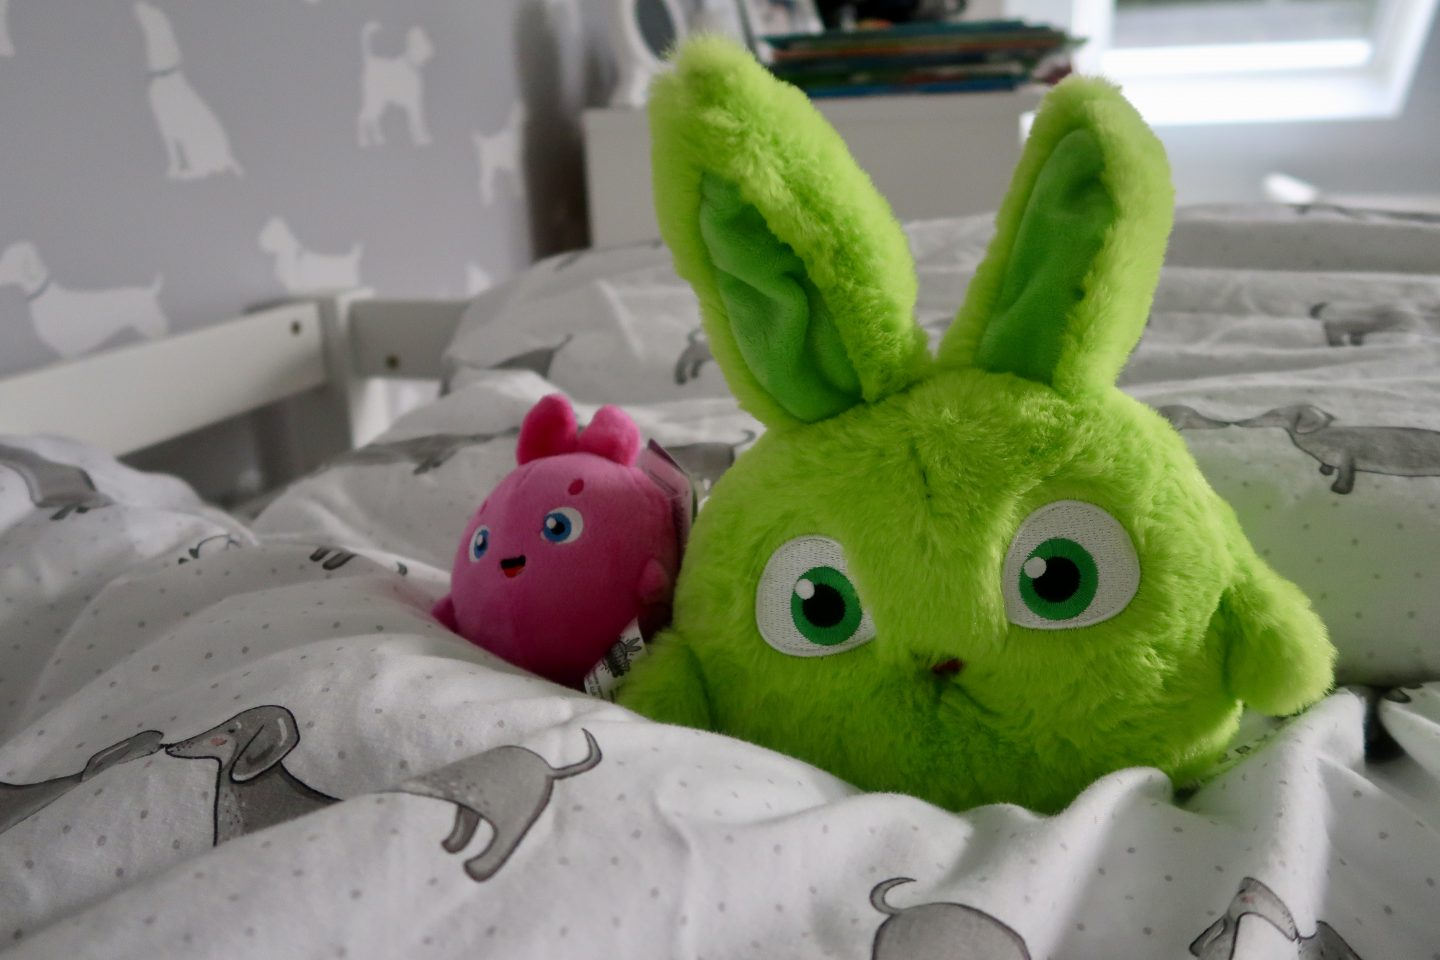 A large green Sunny Bunnies and a small pink Sunny Bunnies sitting on a child's bed